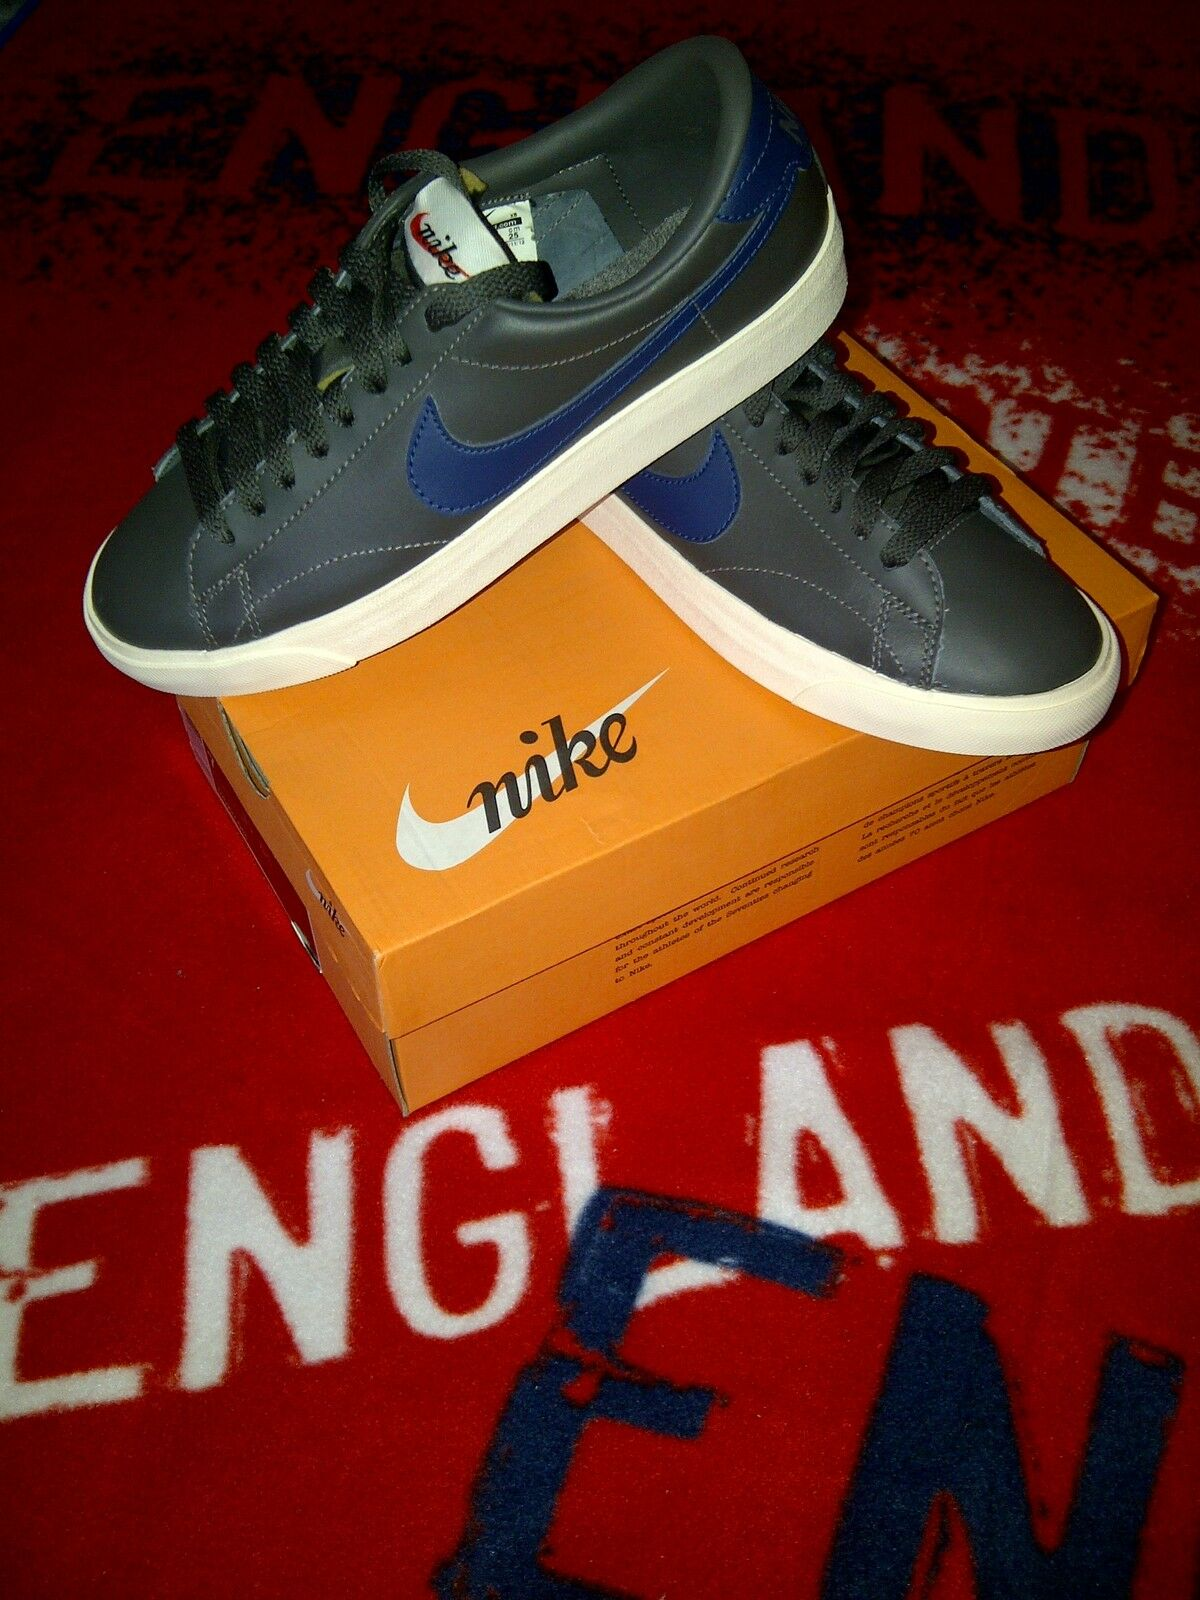 Nike tennis classic ac vintage ..100% genuine..unisex trainers Taille 6 uk eur-40